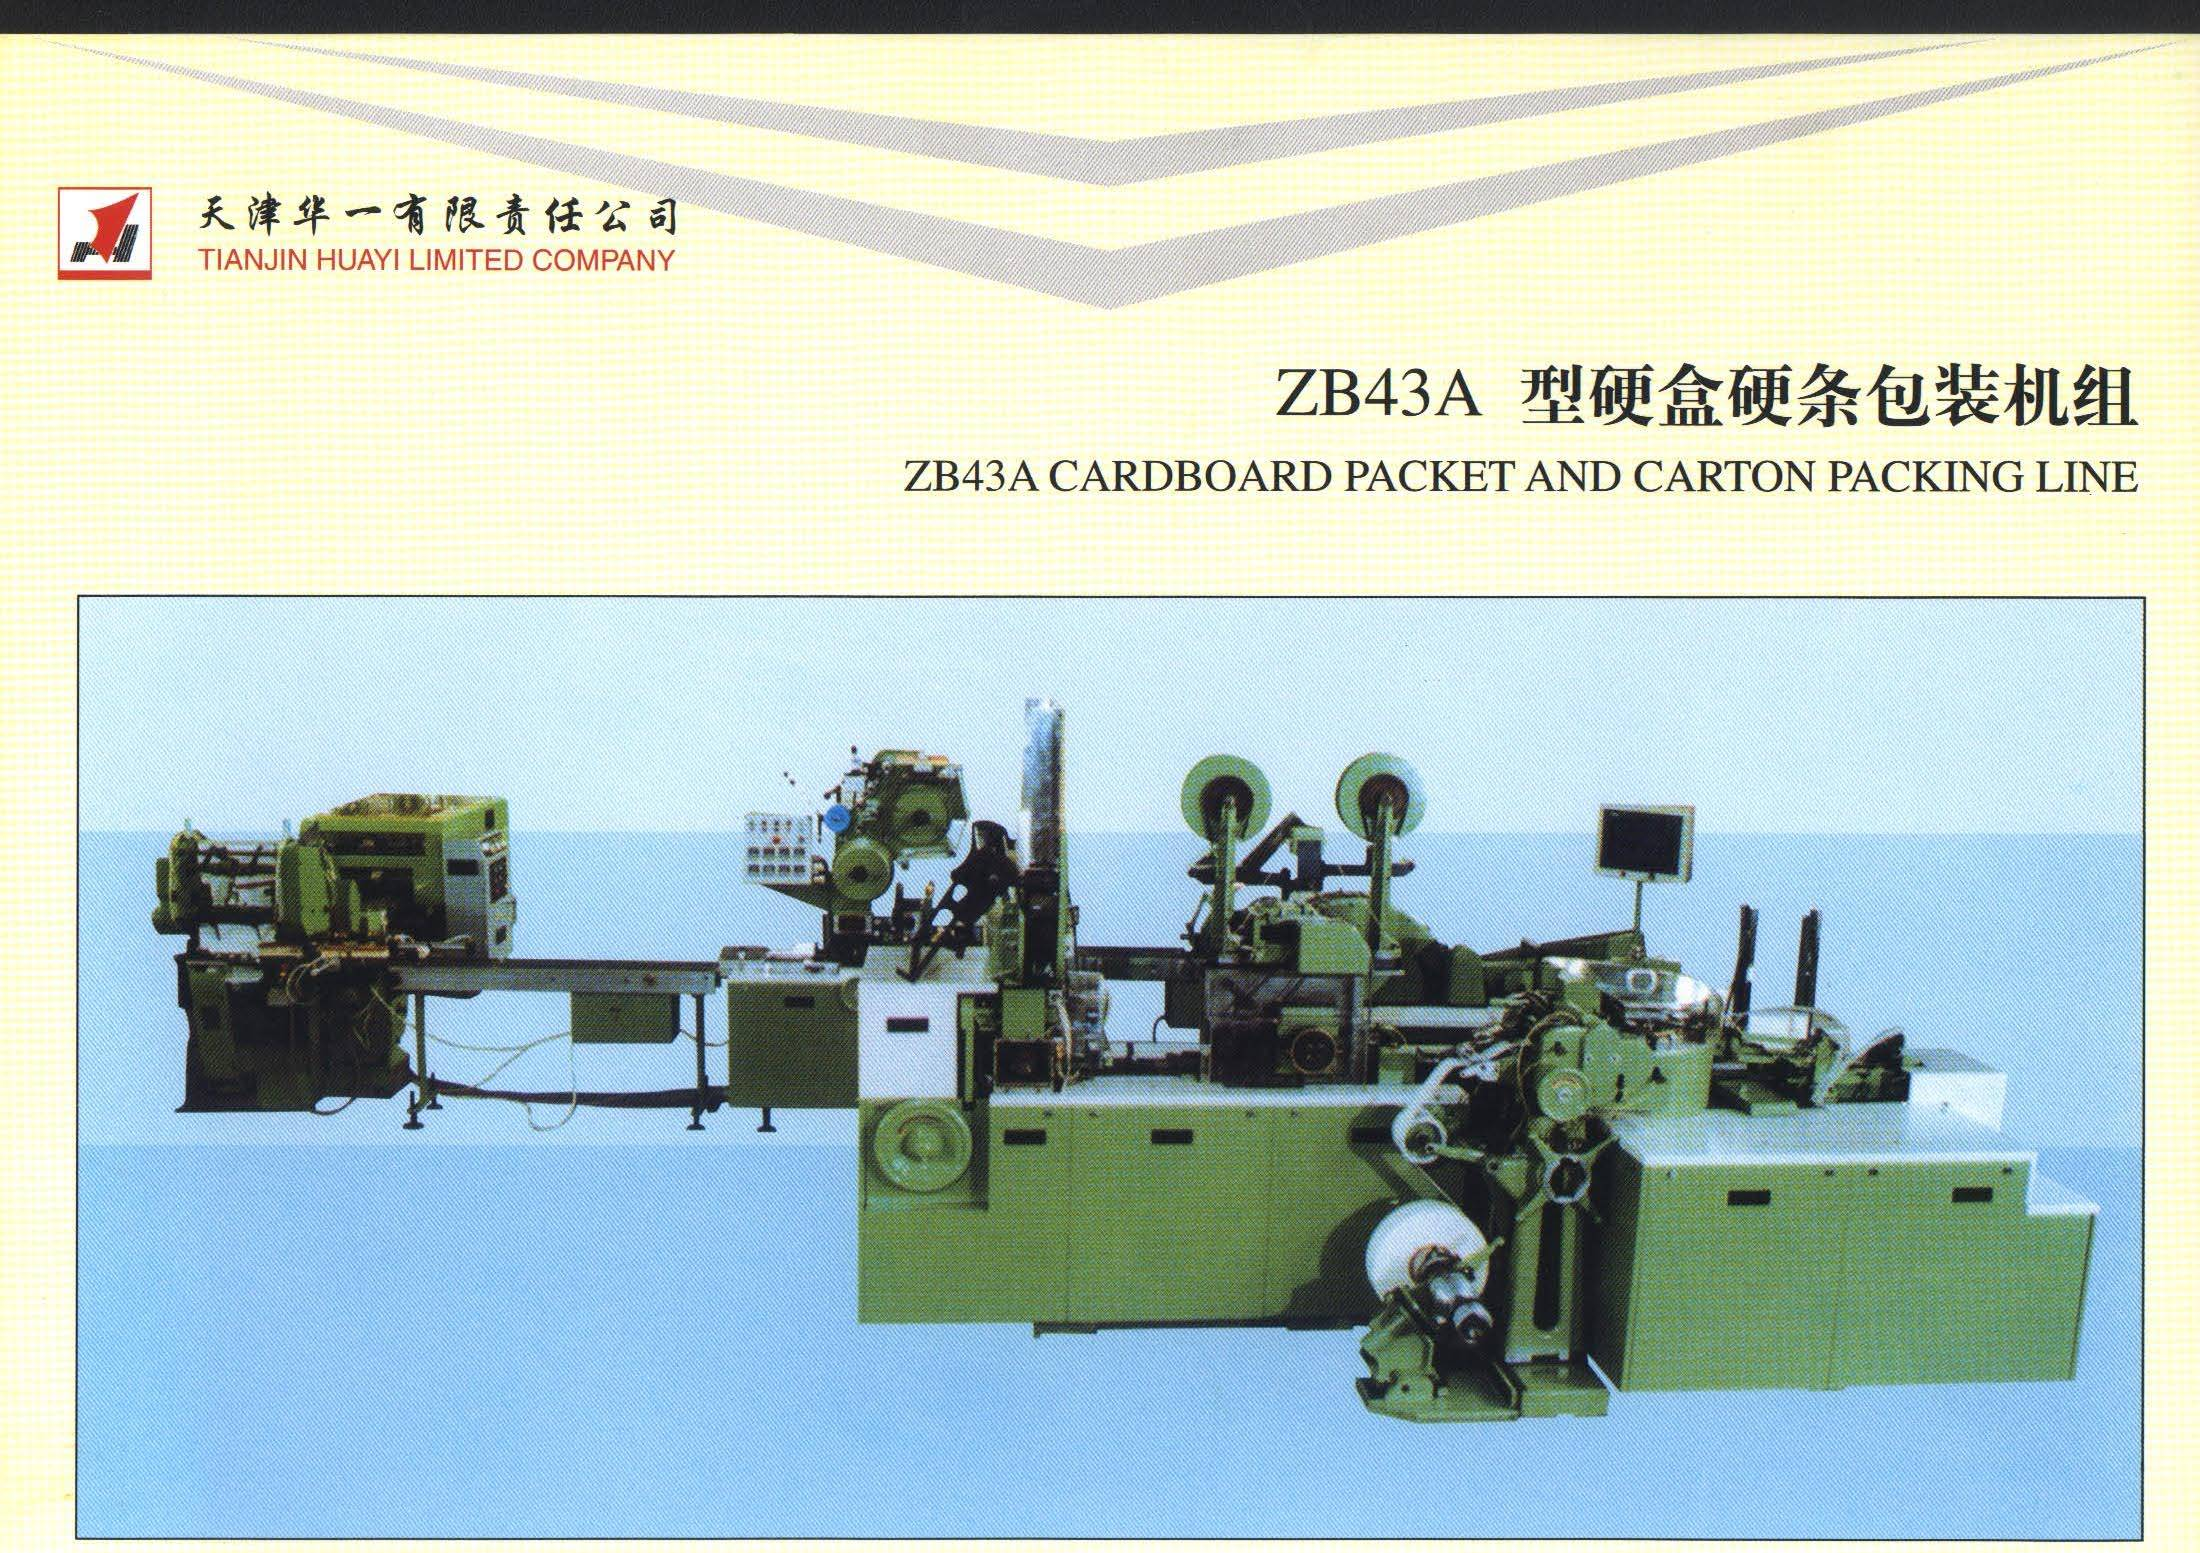 ZB43A HLP2 cigarette packing machine